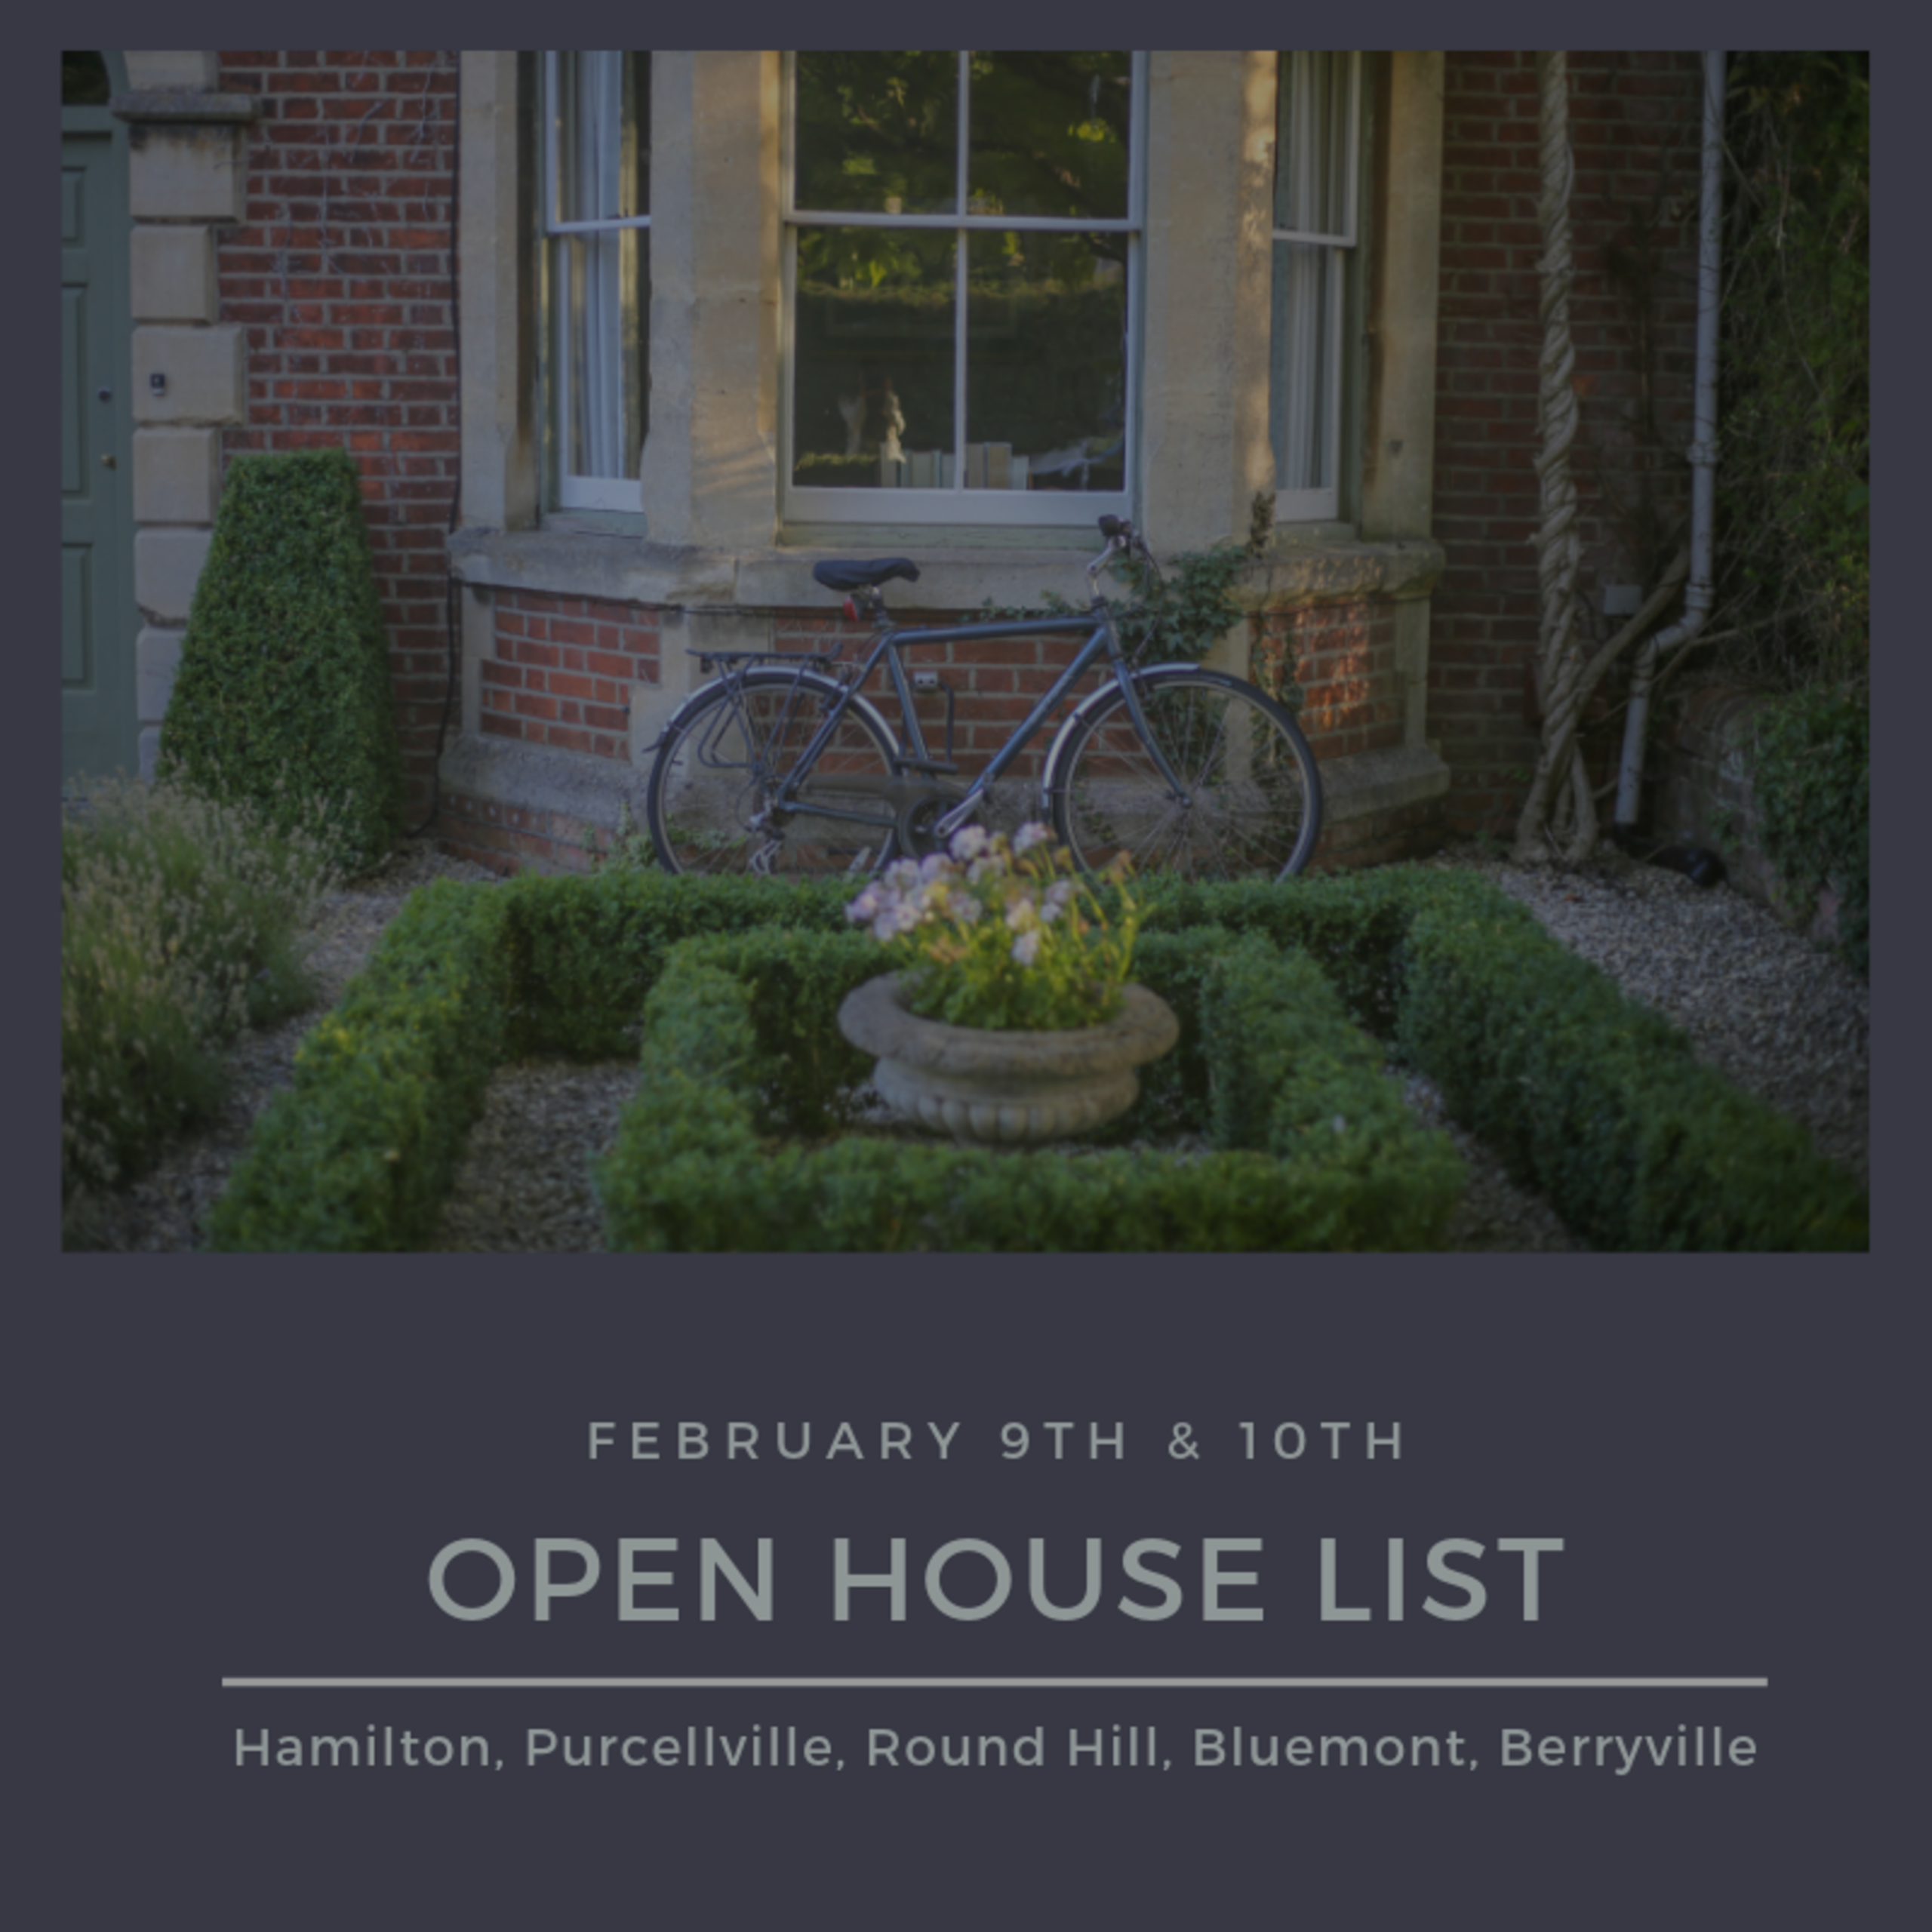 Open House List 2/9/19 – 2/10/19